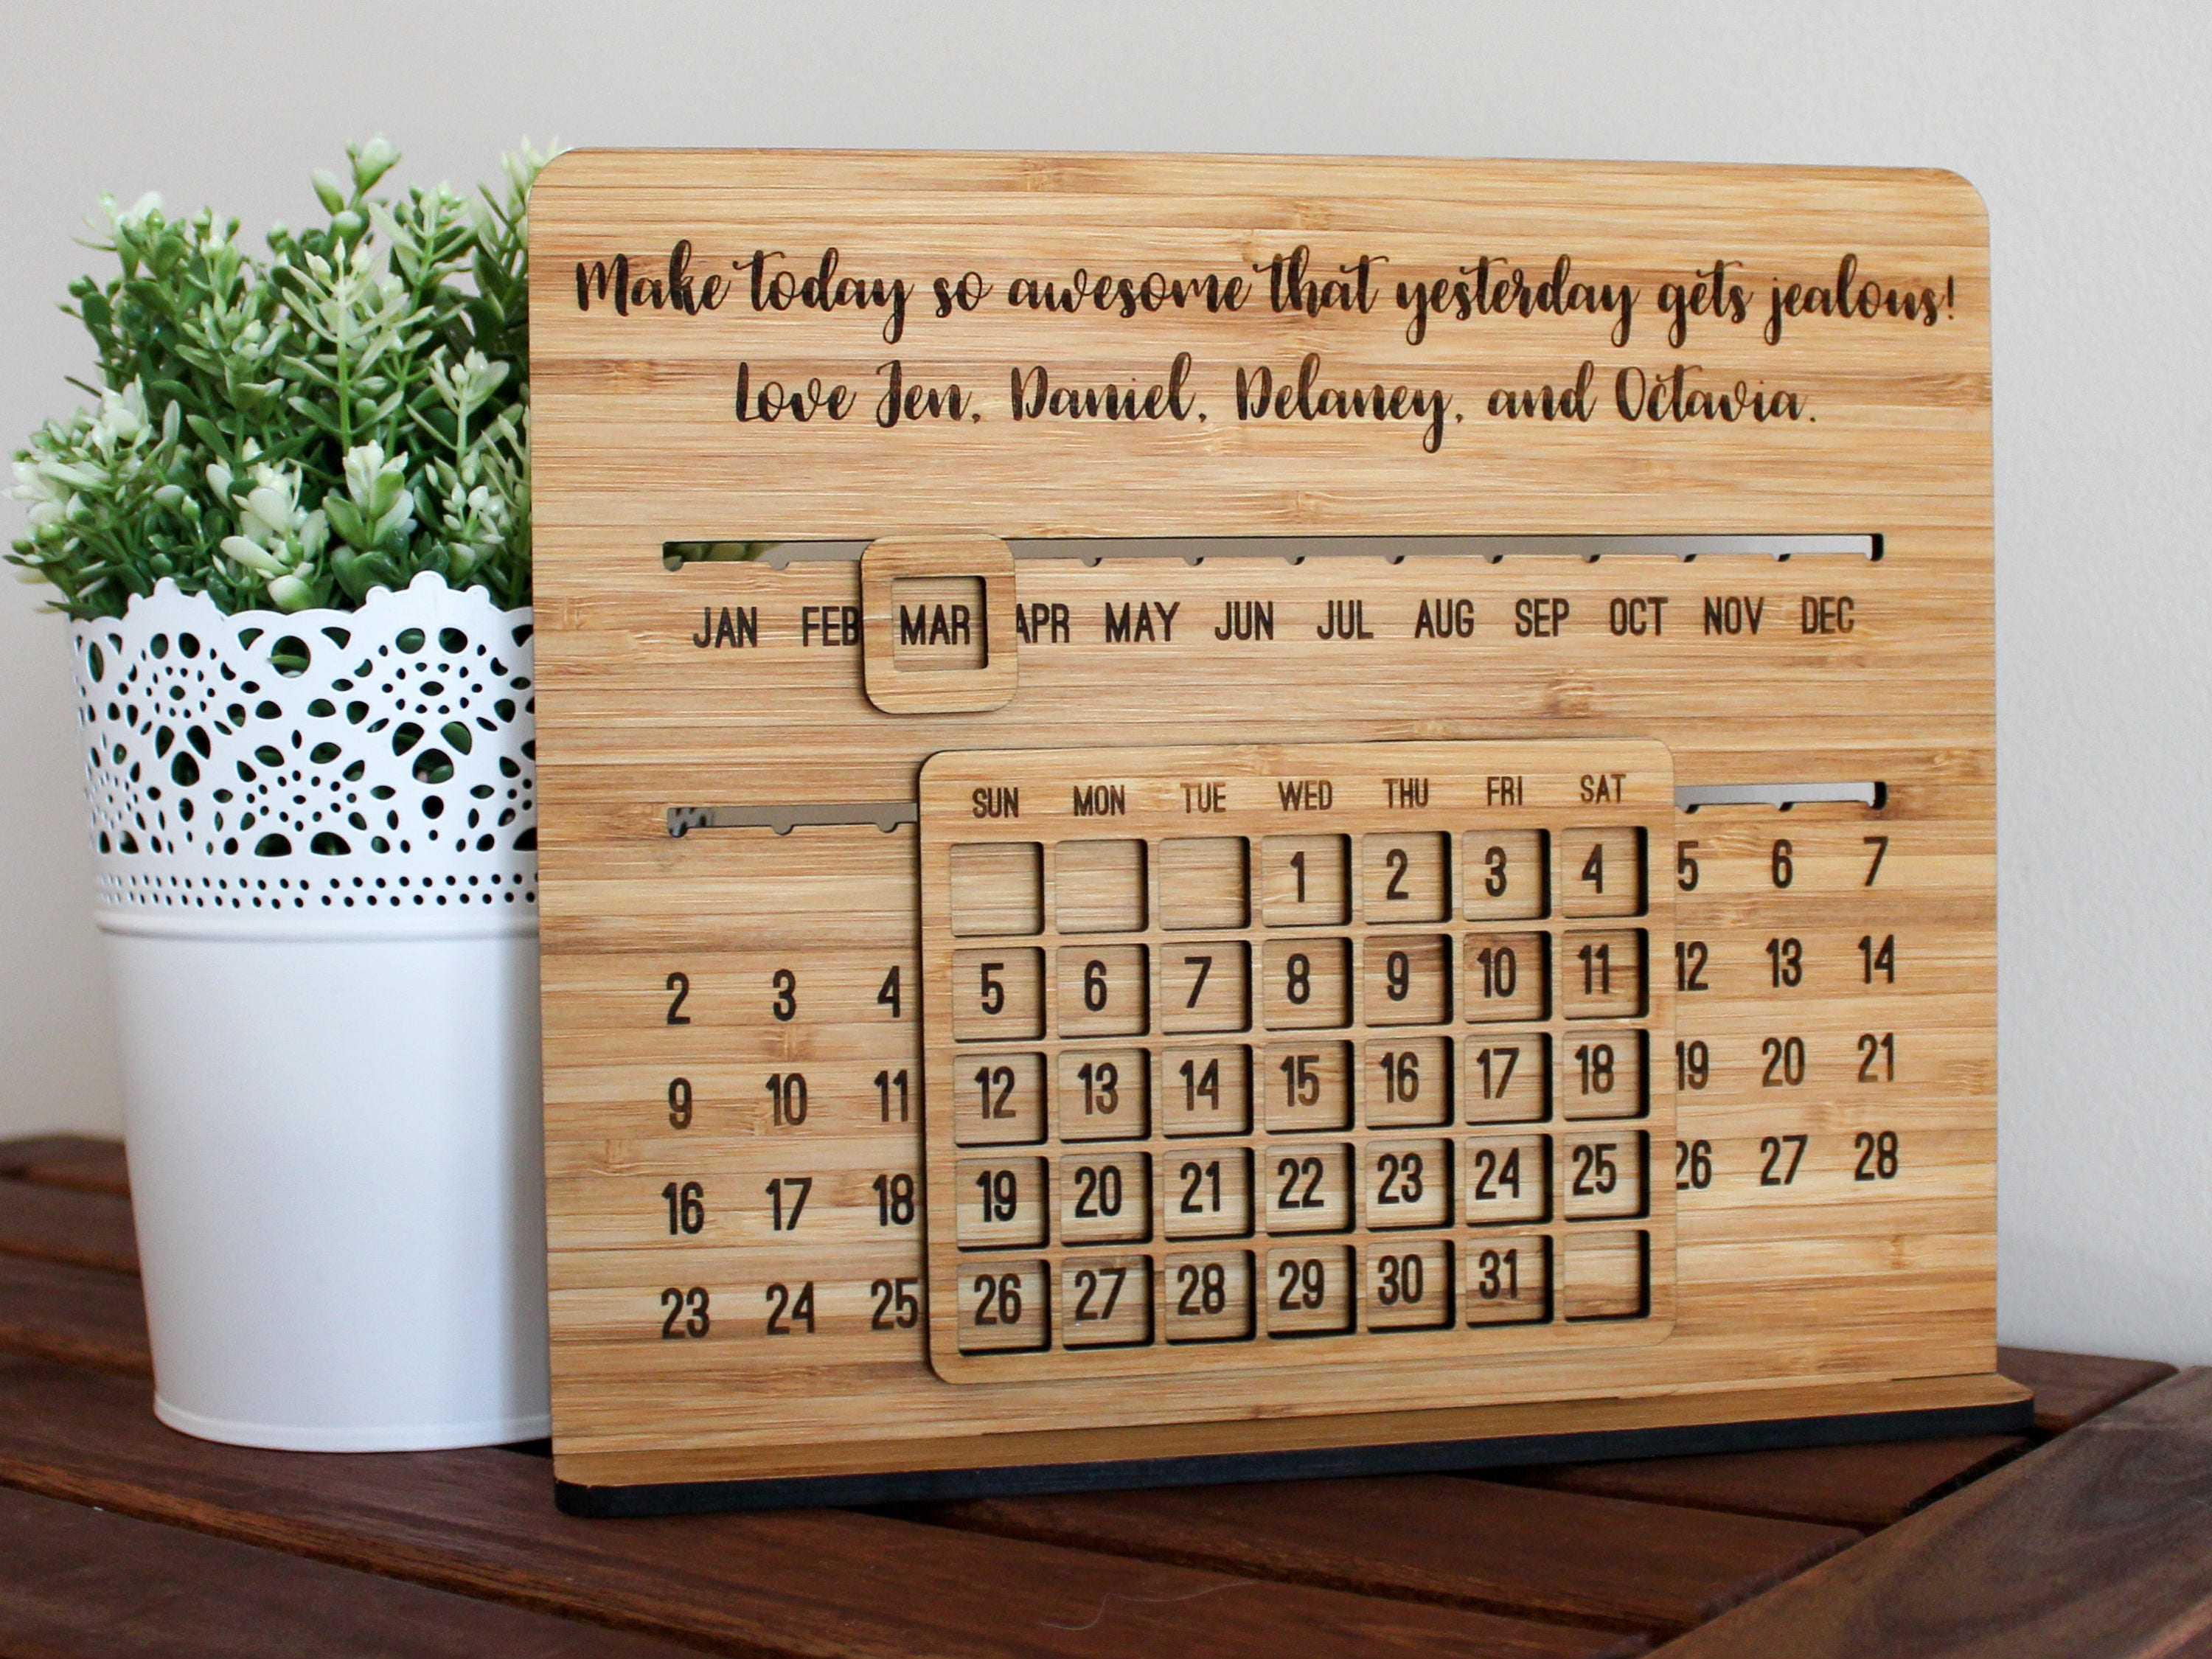 How To Make A Wooden Desk Calendar Hostgarcia